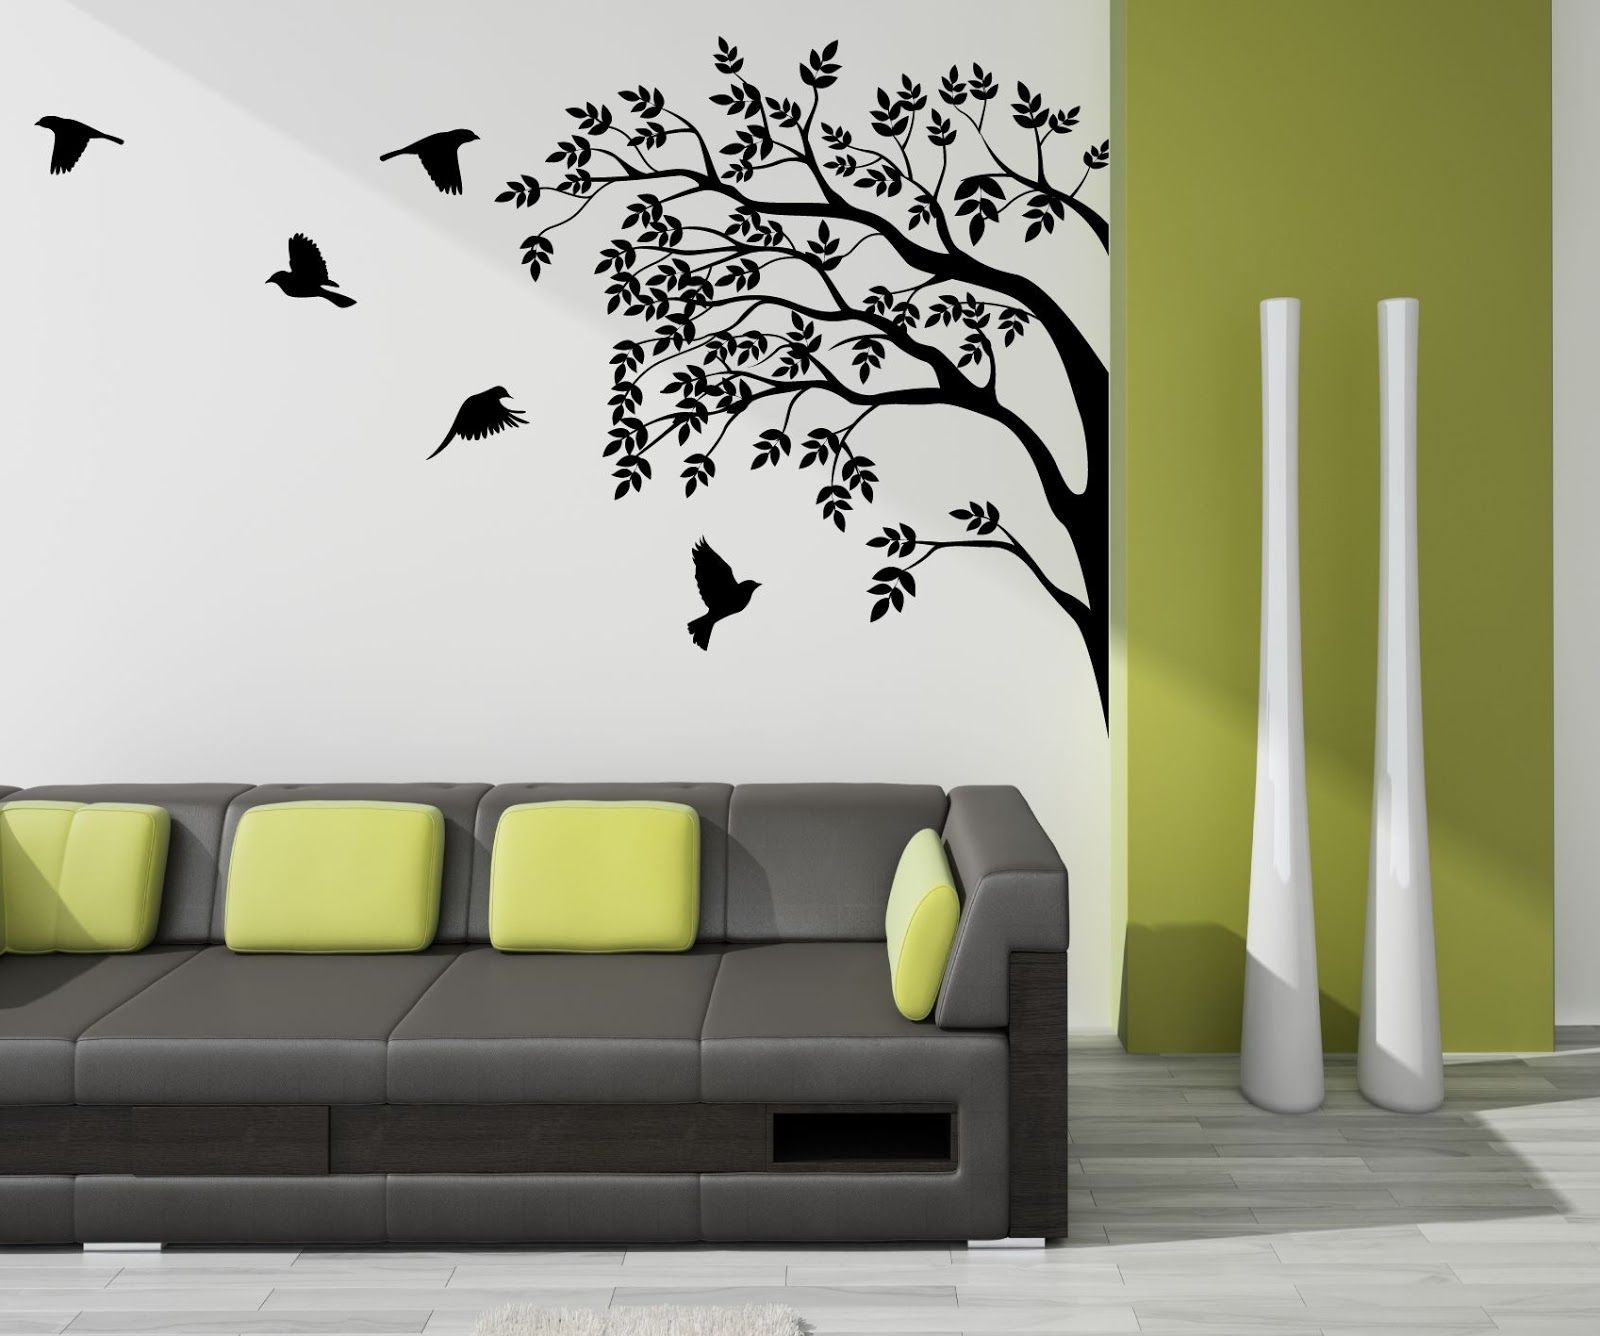 Decoration for your home interior with stunning tree images wall art Paint of wall